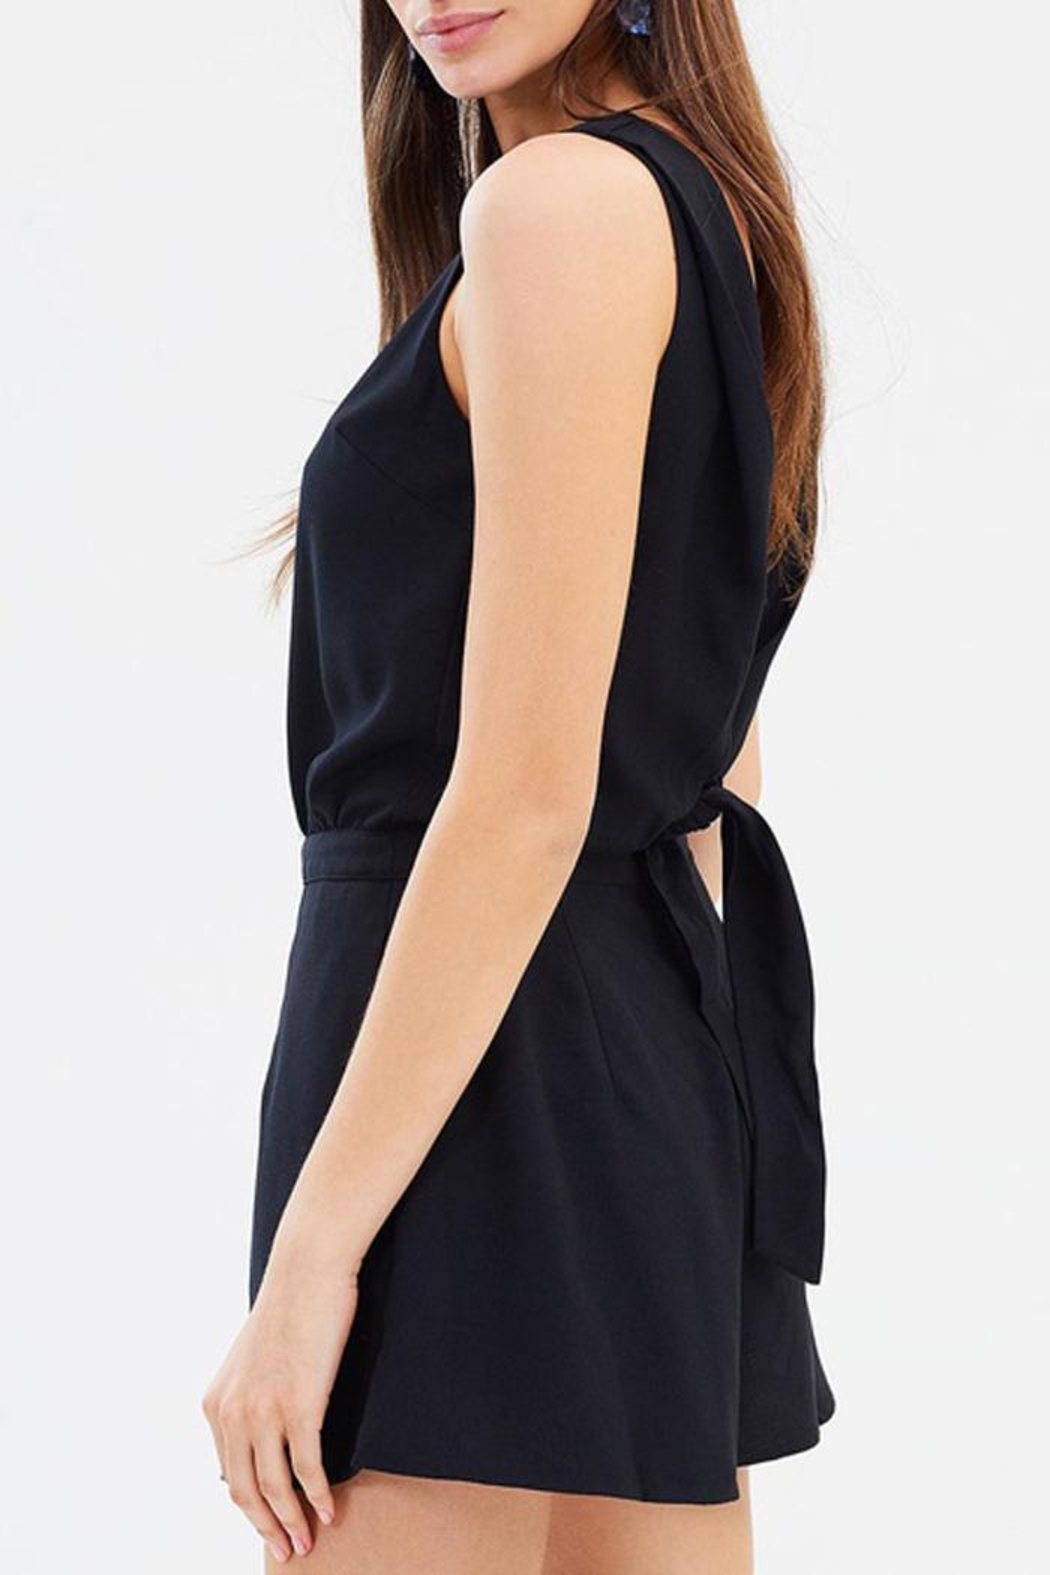 GRACE WILLOW Elyse Black Playsuit - Front Full Image